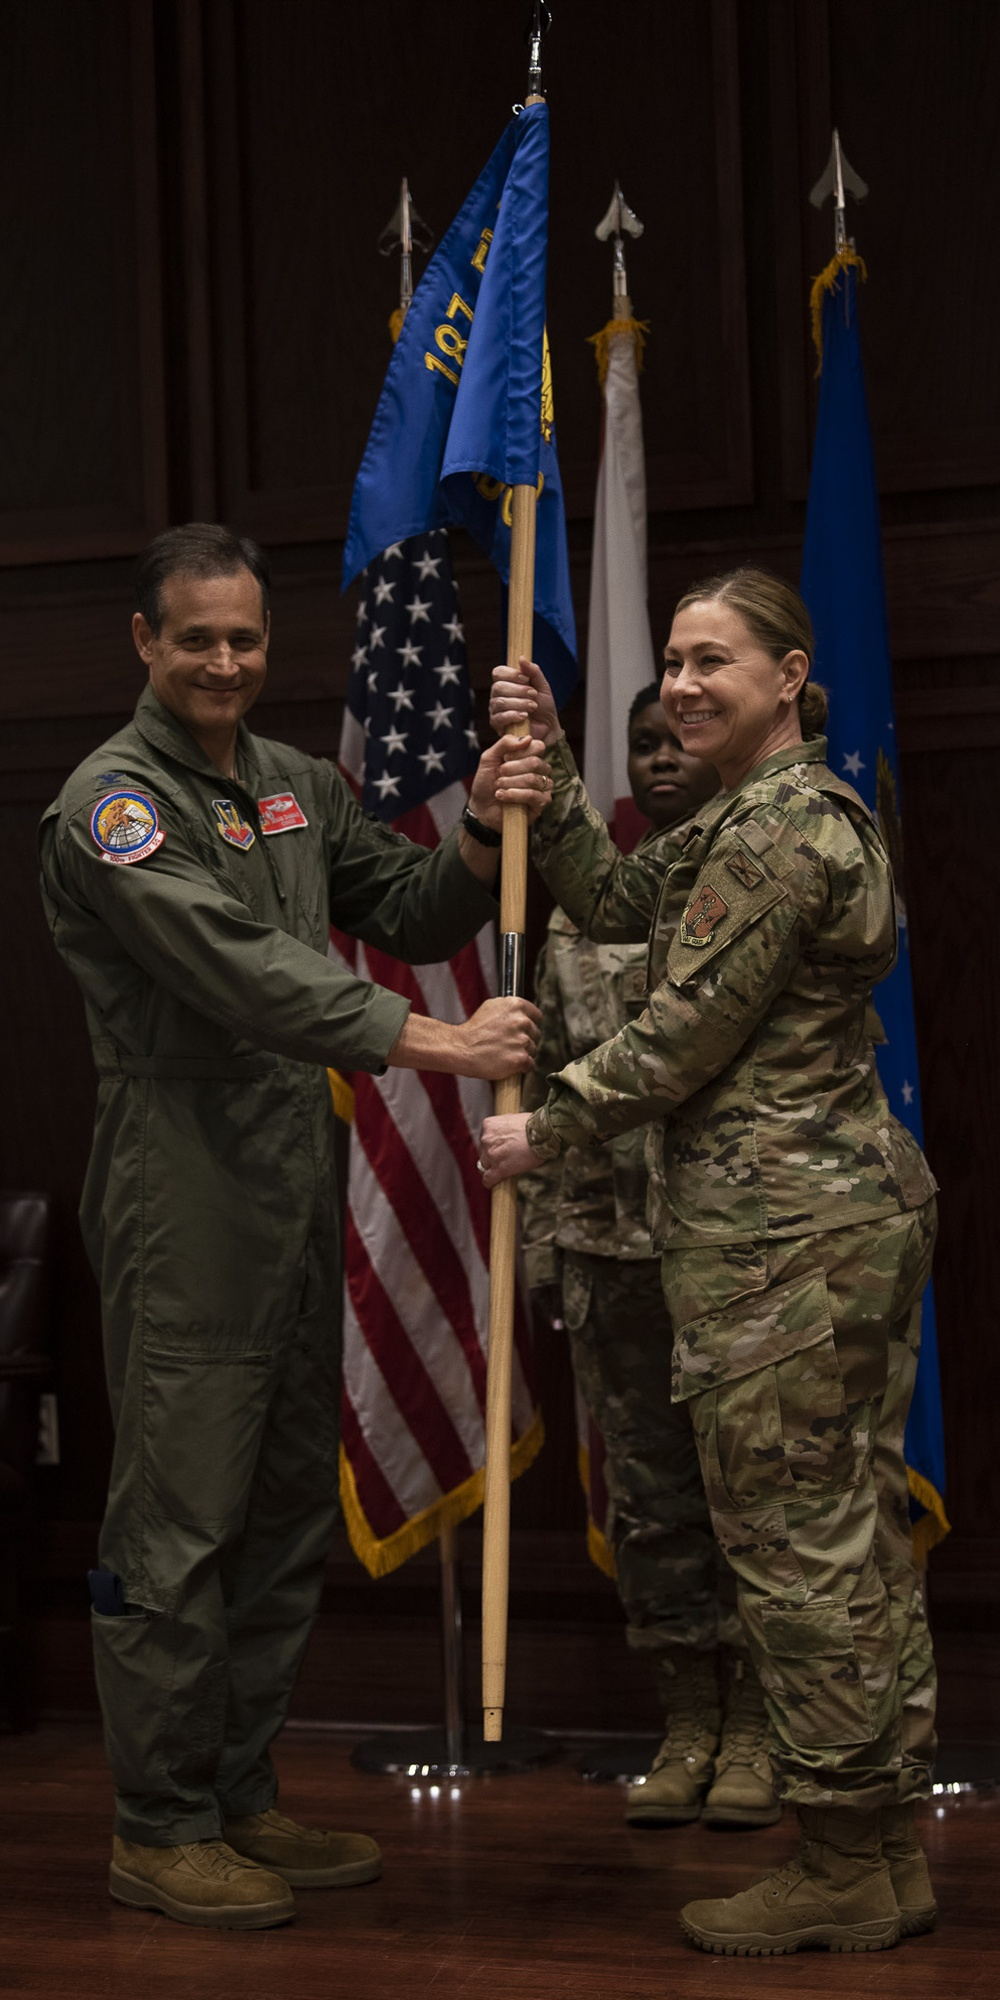 Lt. Col. Mundell Assumes Command Of 187th FW MDG